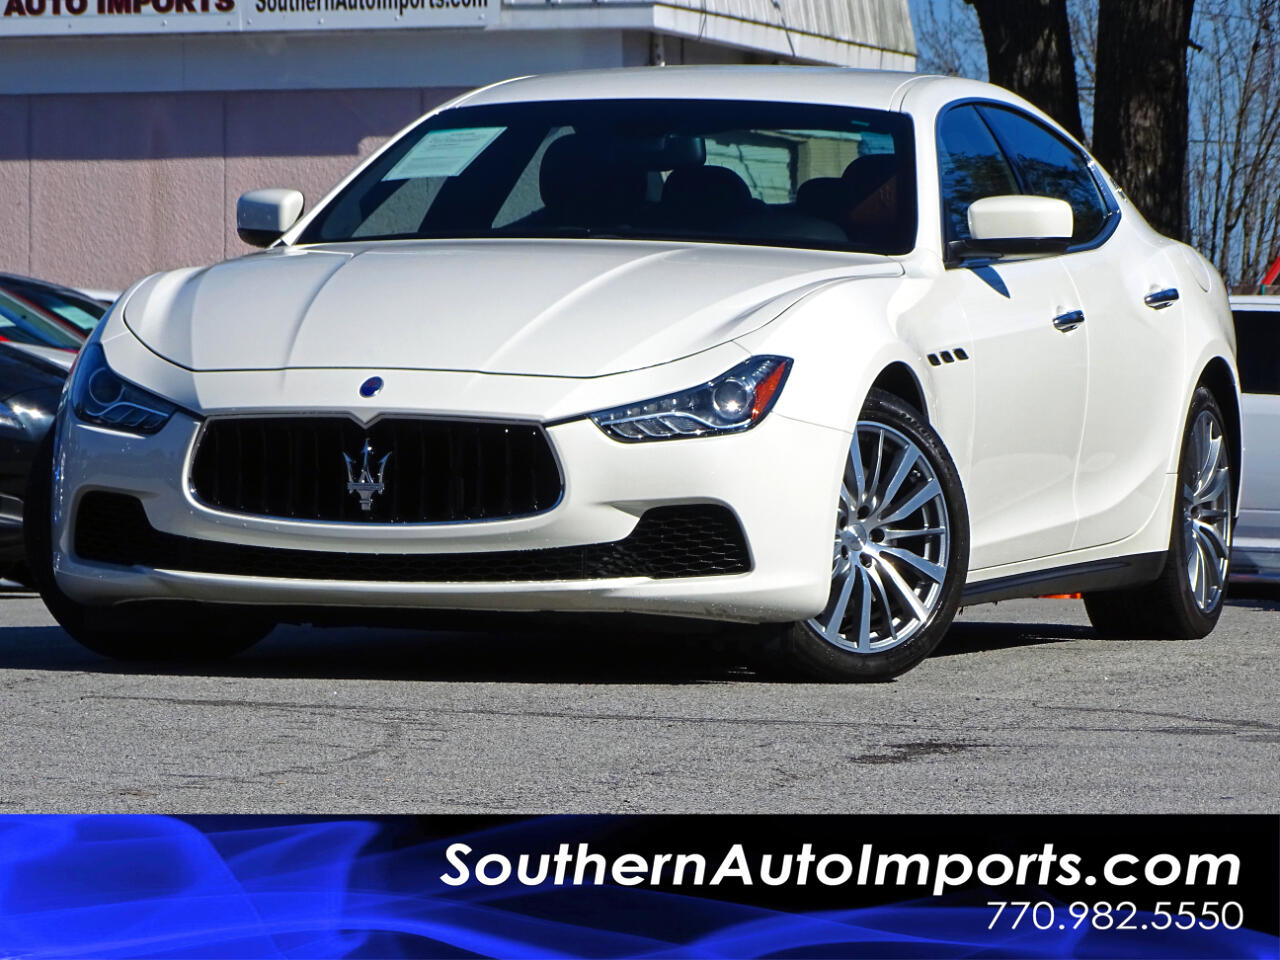 2015 Maserati Ghibli Luxury w/Navigation 1owner